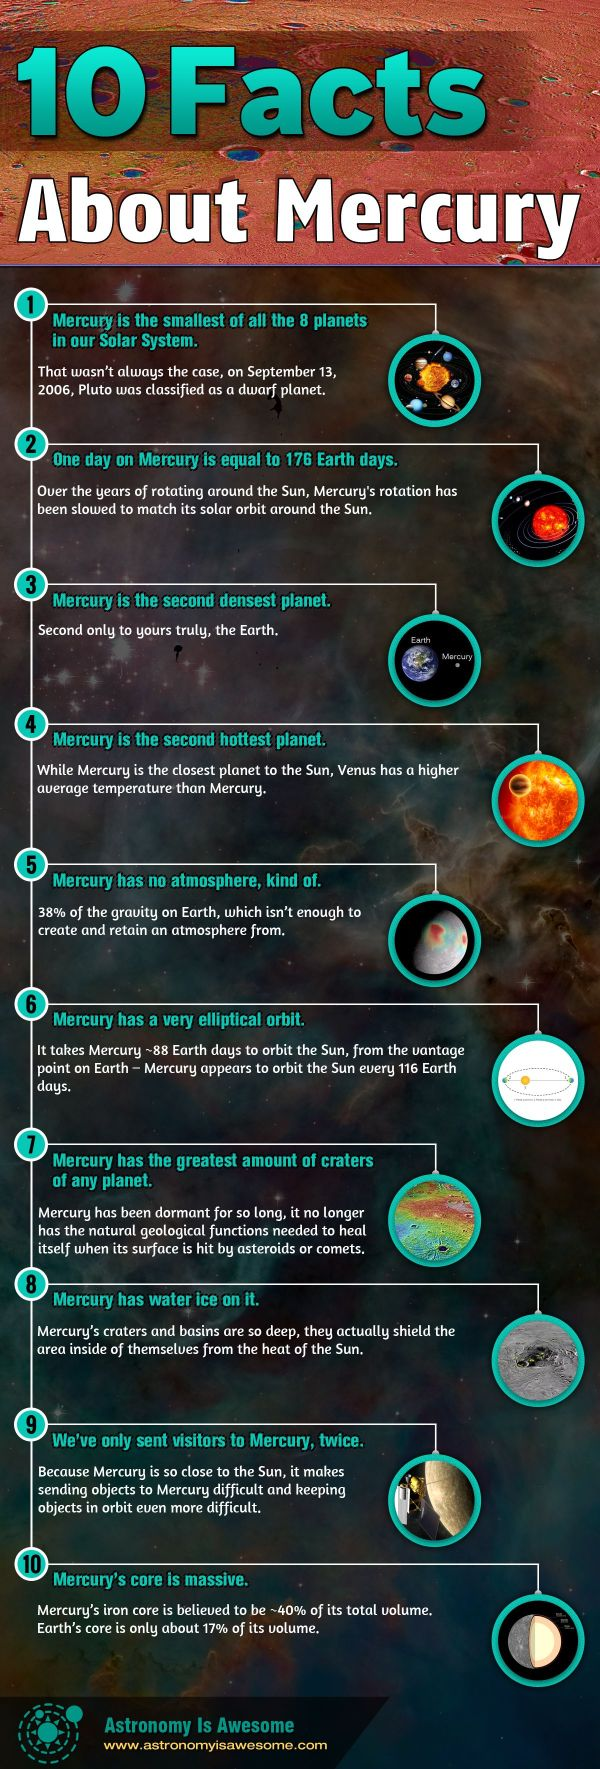 10 Facts About Mercury | Astronomy Is Awesome | Space ...